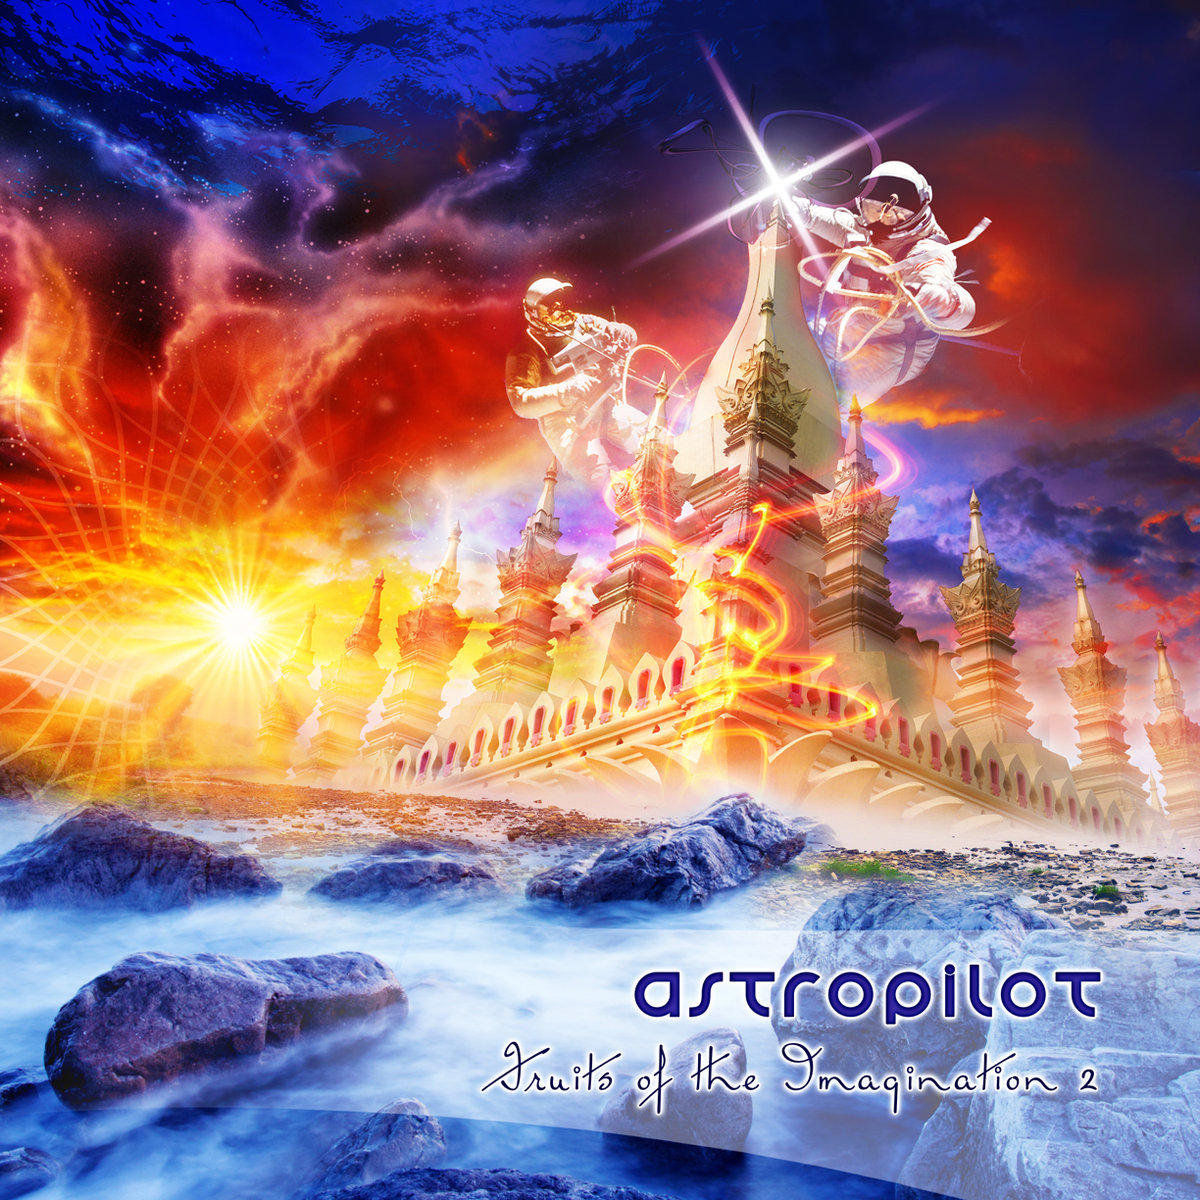 AstroPilot - The Green Eyes Mystery ² @ 'Fruits of the Imagination 2' album (astropilot, electronic)